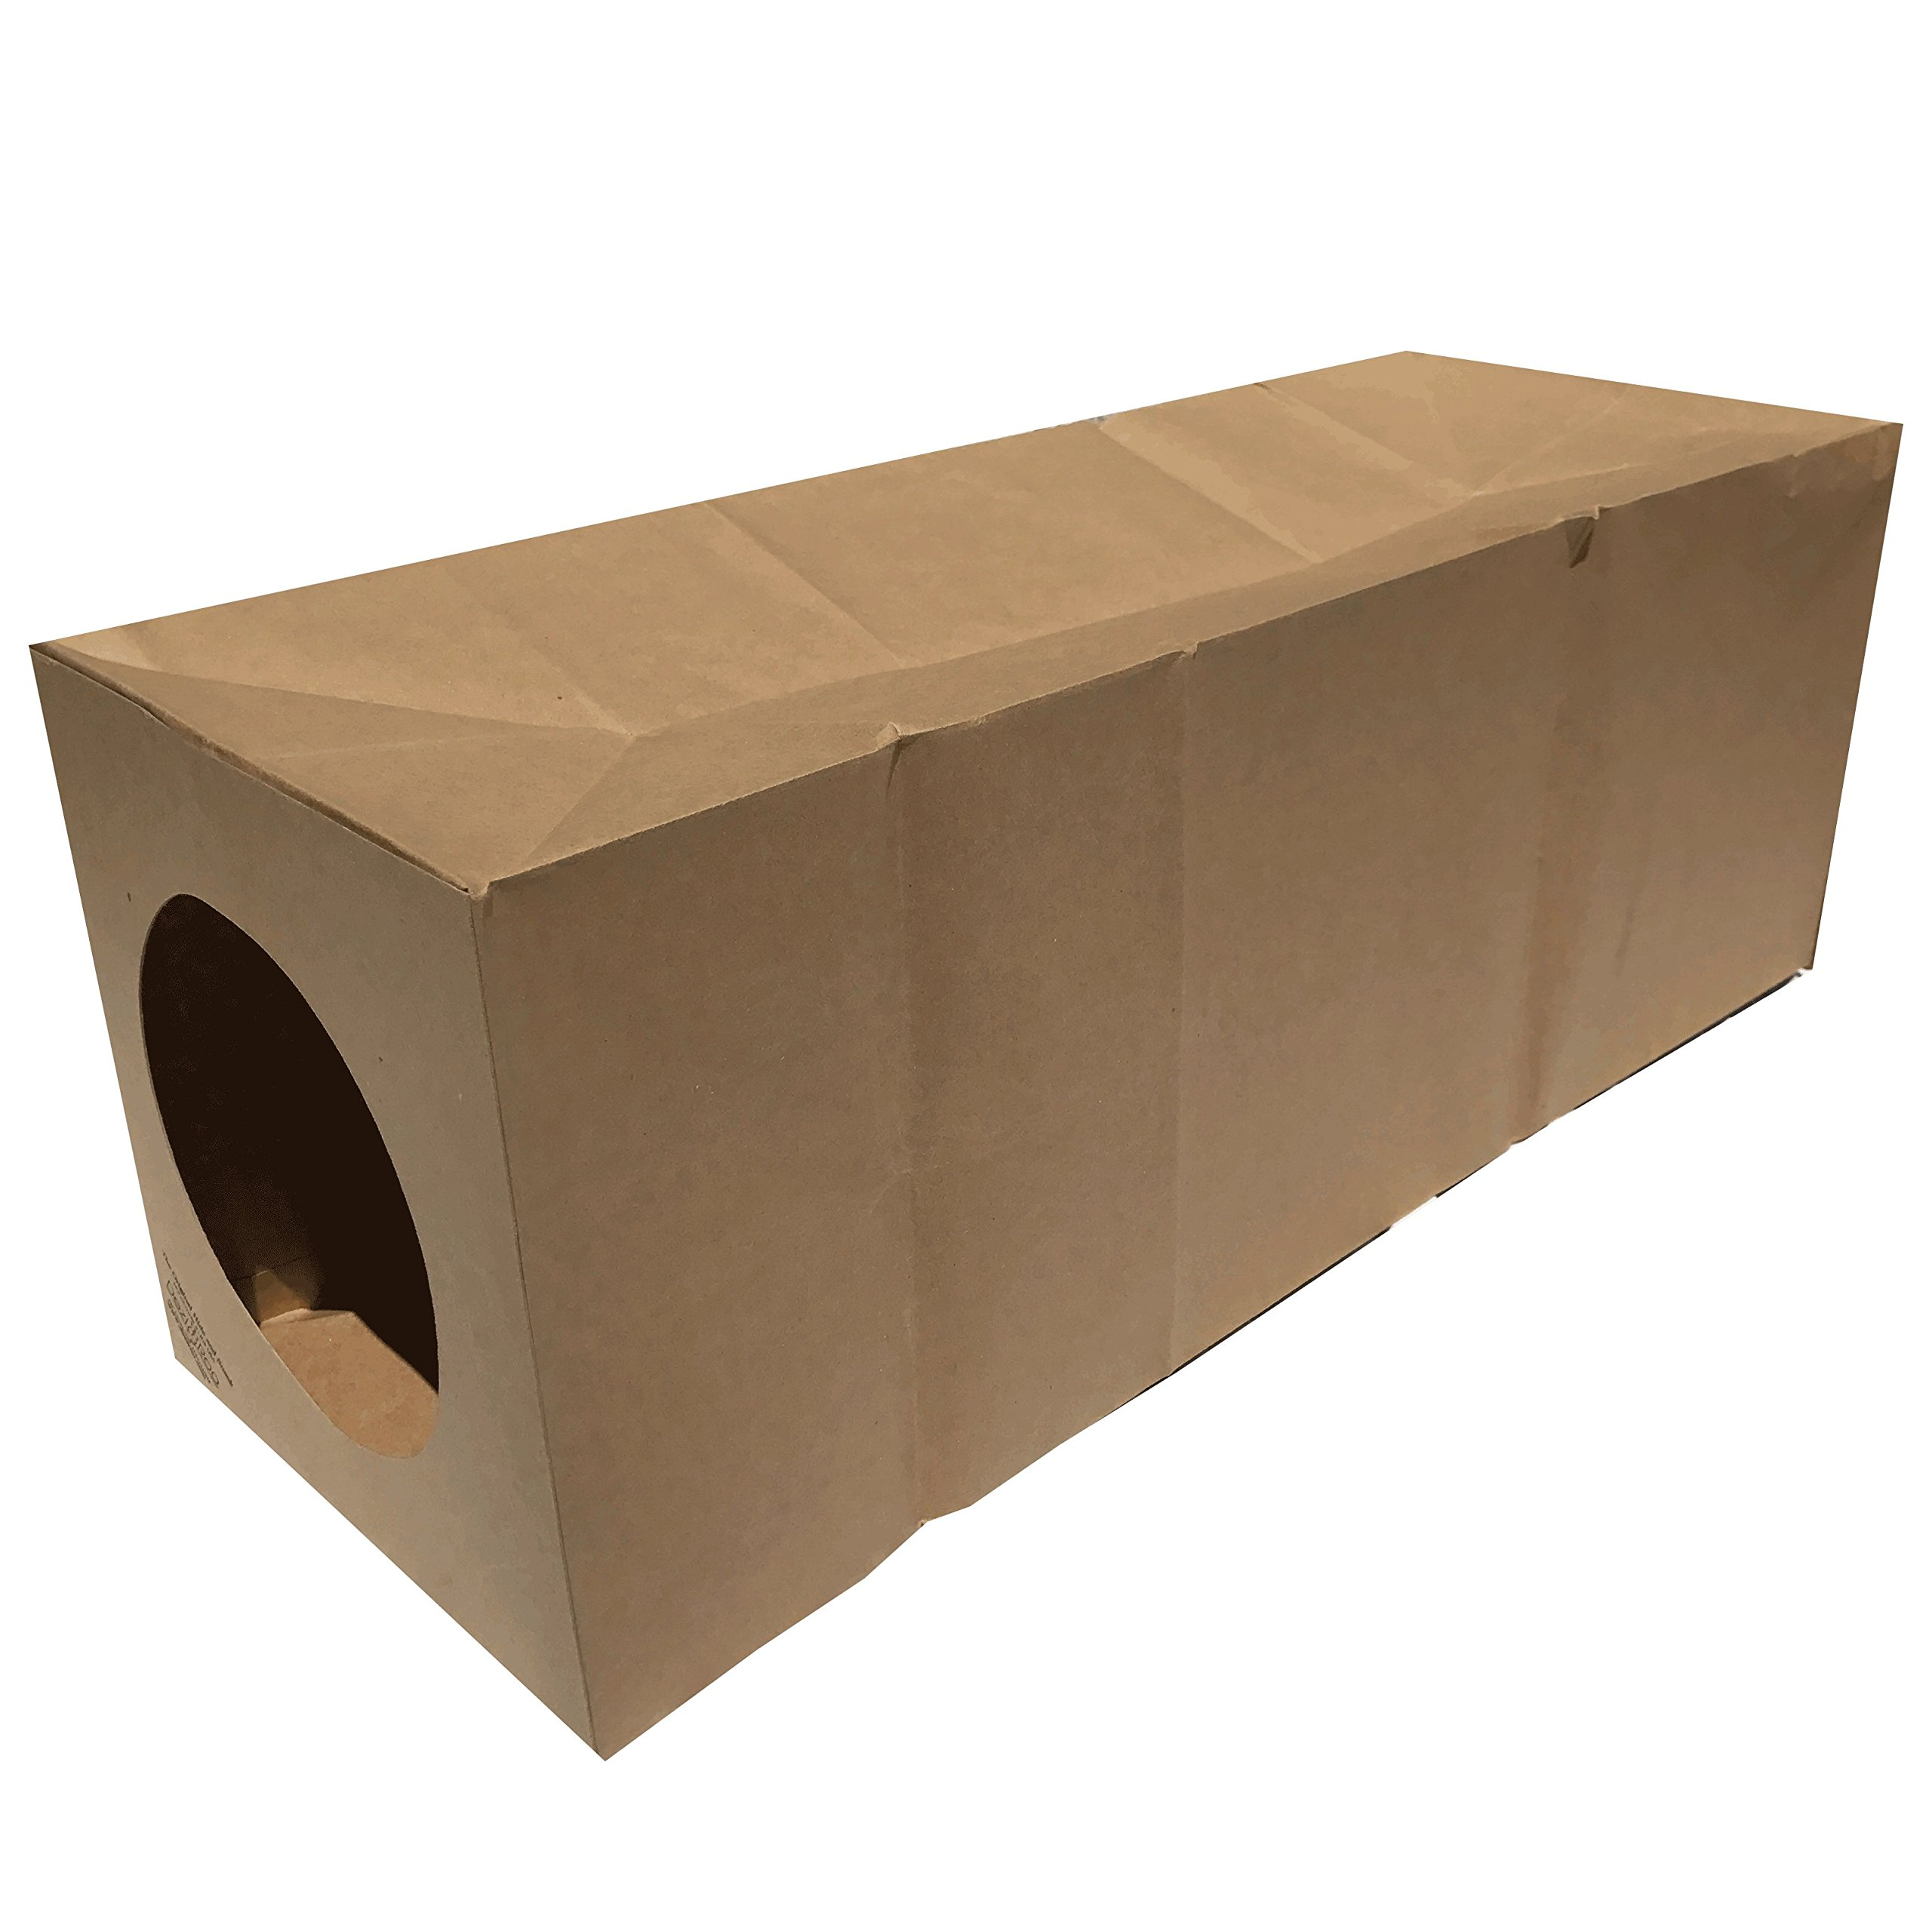 Dezi & Roo Hide and Sneak Collapsible Paper Cat Tunnel Made in The USA -Your Cat's New Favorite Toy - Fun Interactive Cat Toy - Activity Play Tunnel - Hidewaway by Dezi & Roo